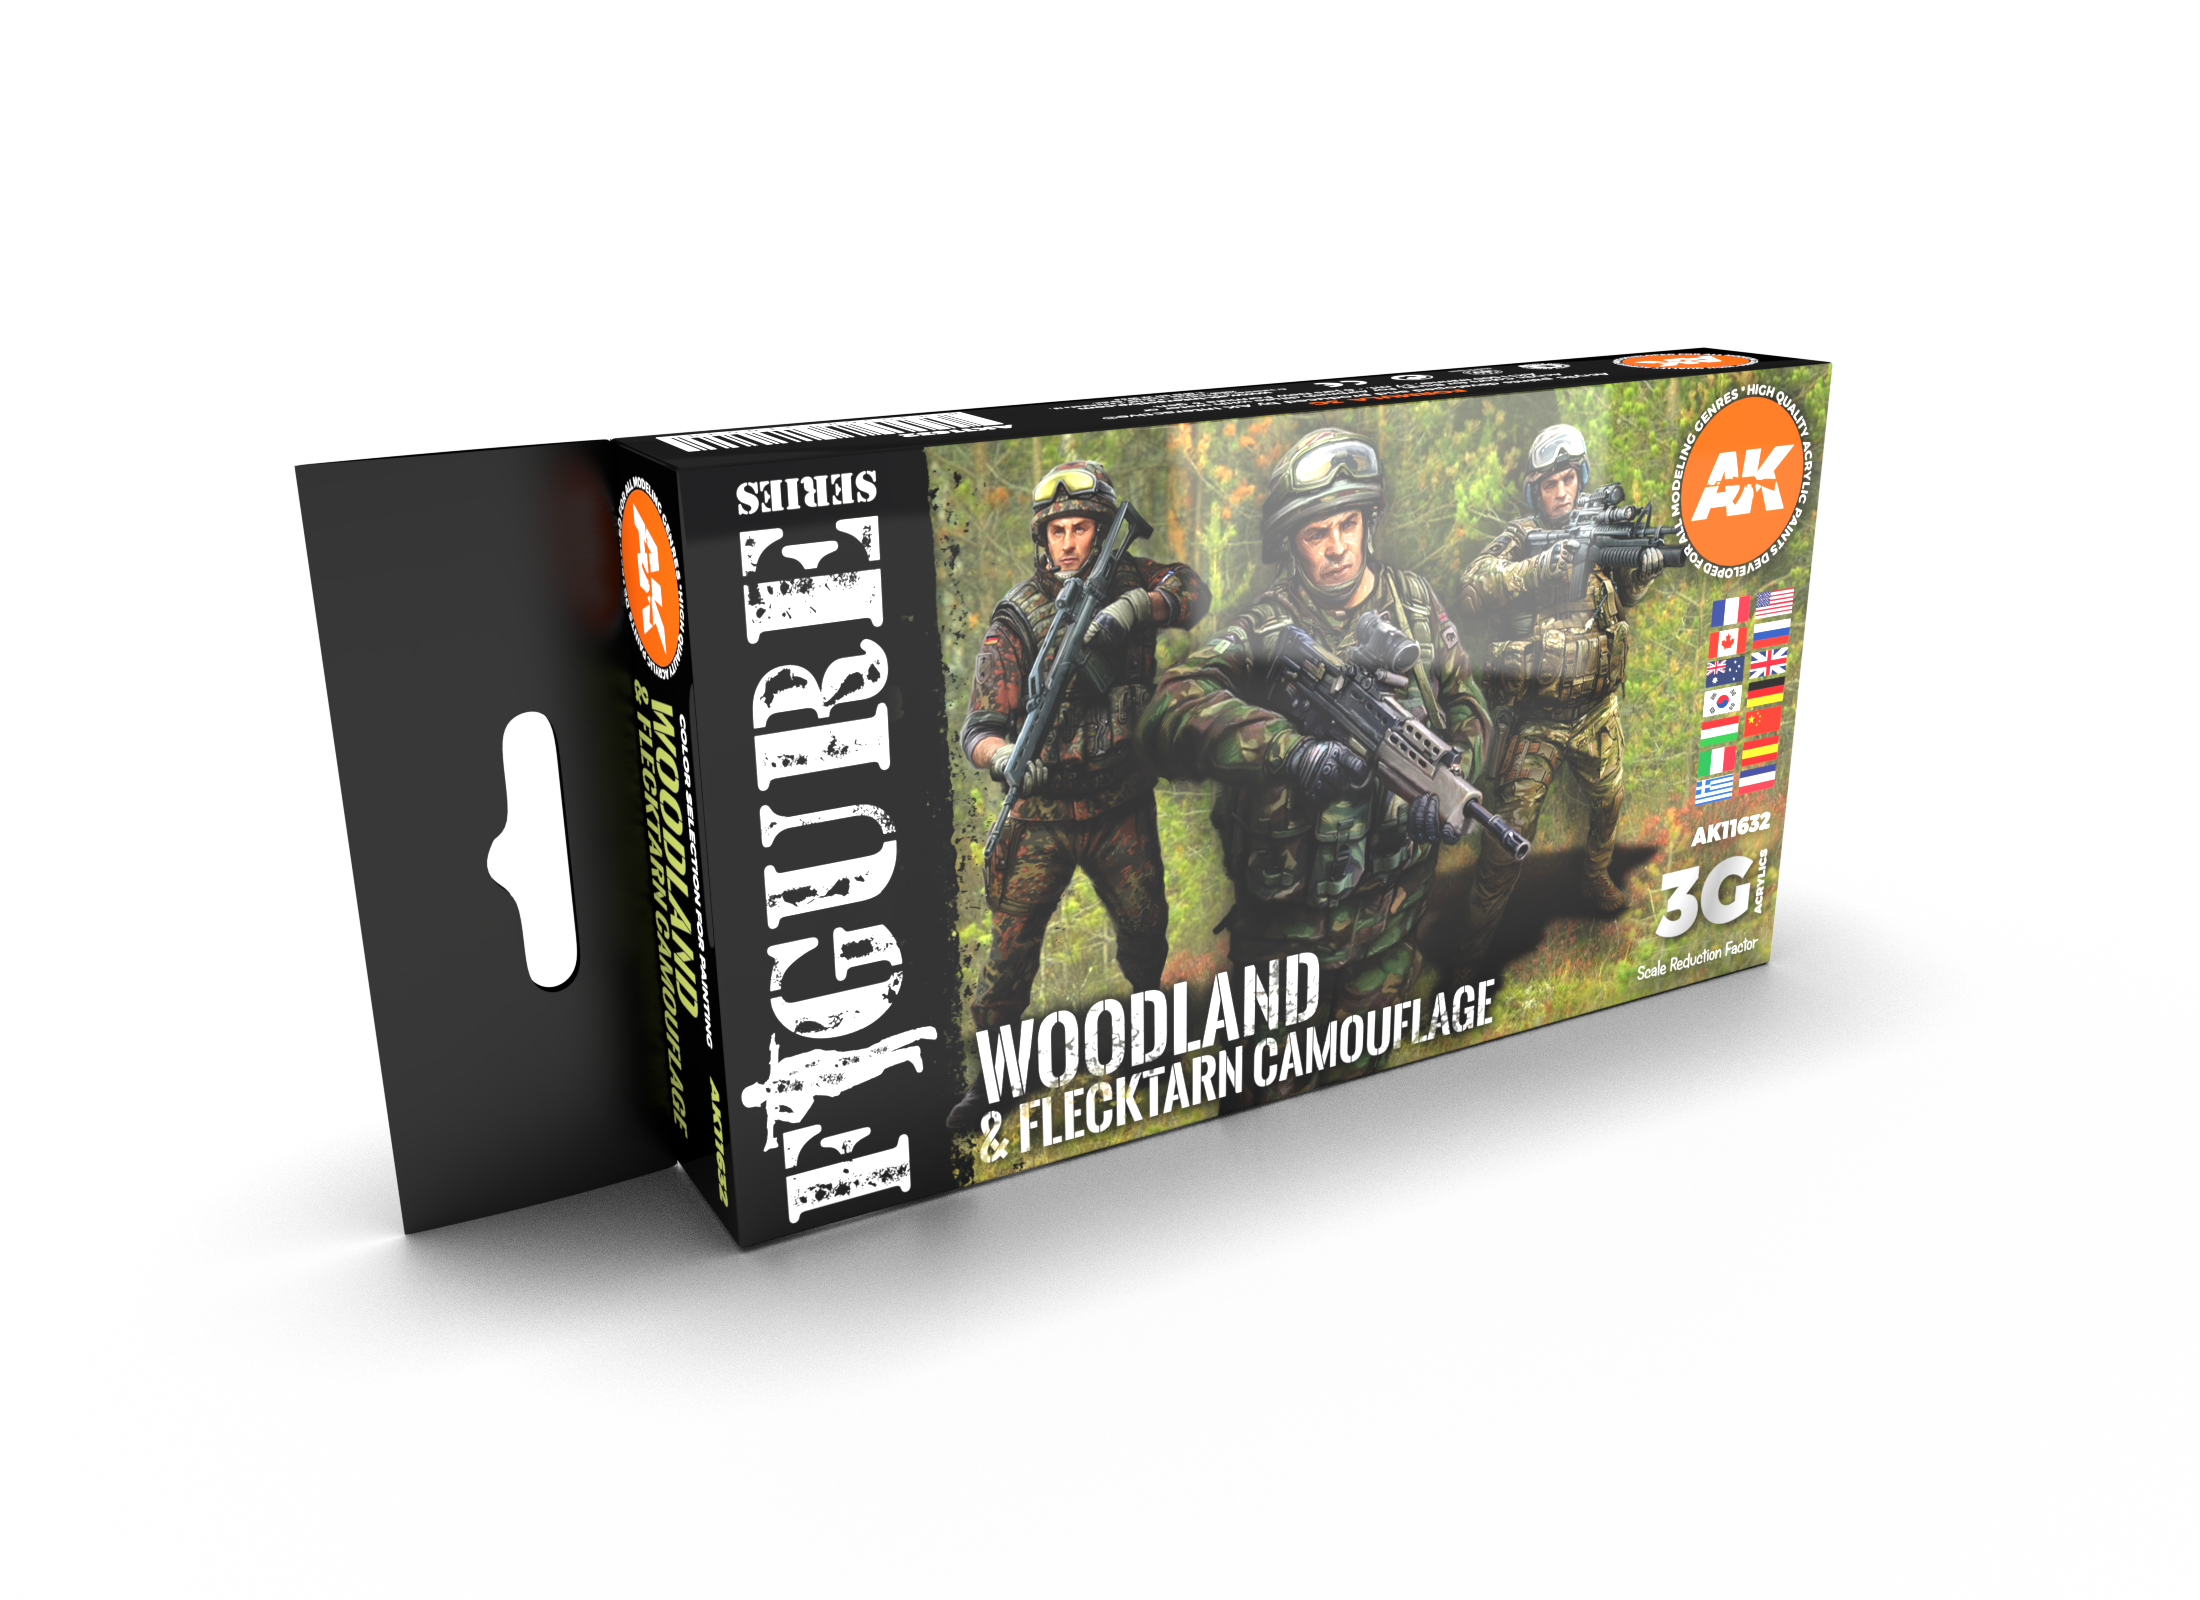 AK Interactive 3G Modern Woodland And Flecktarn Camouflages